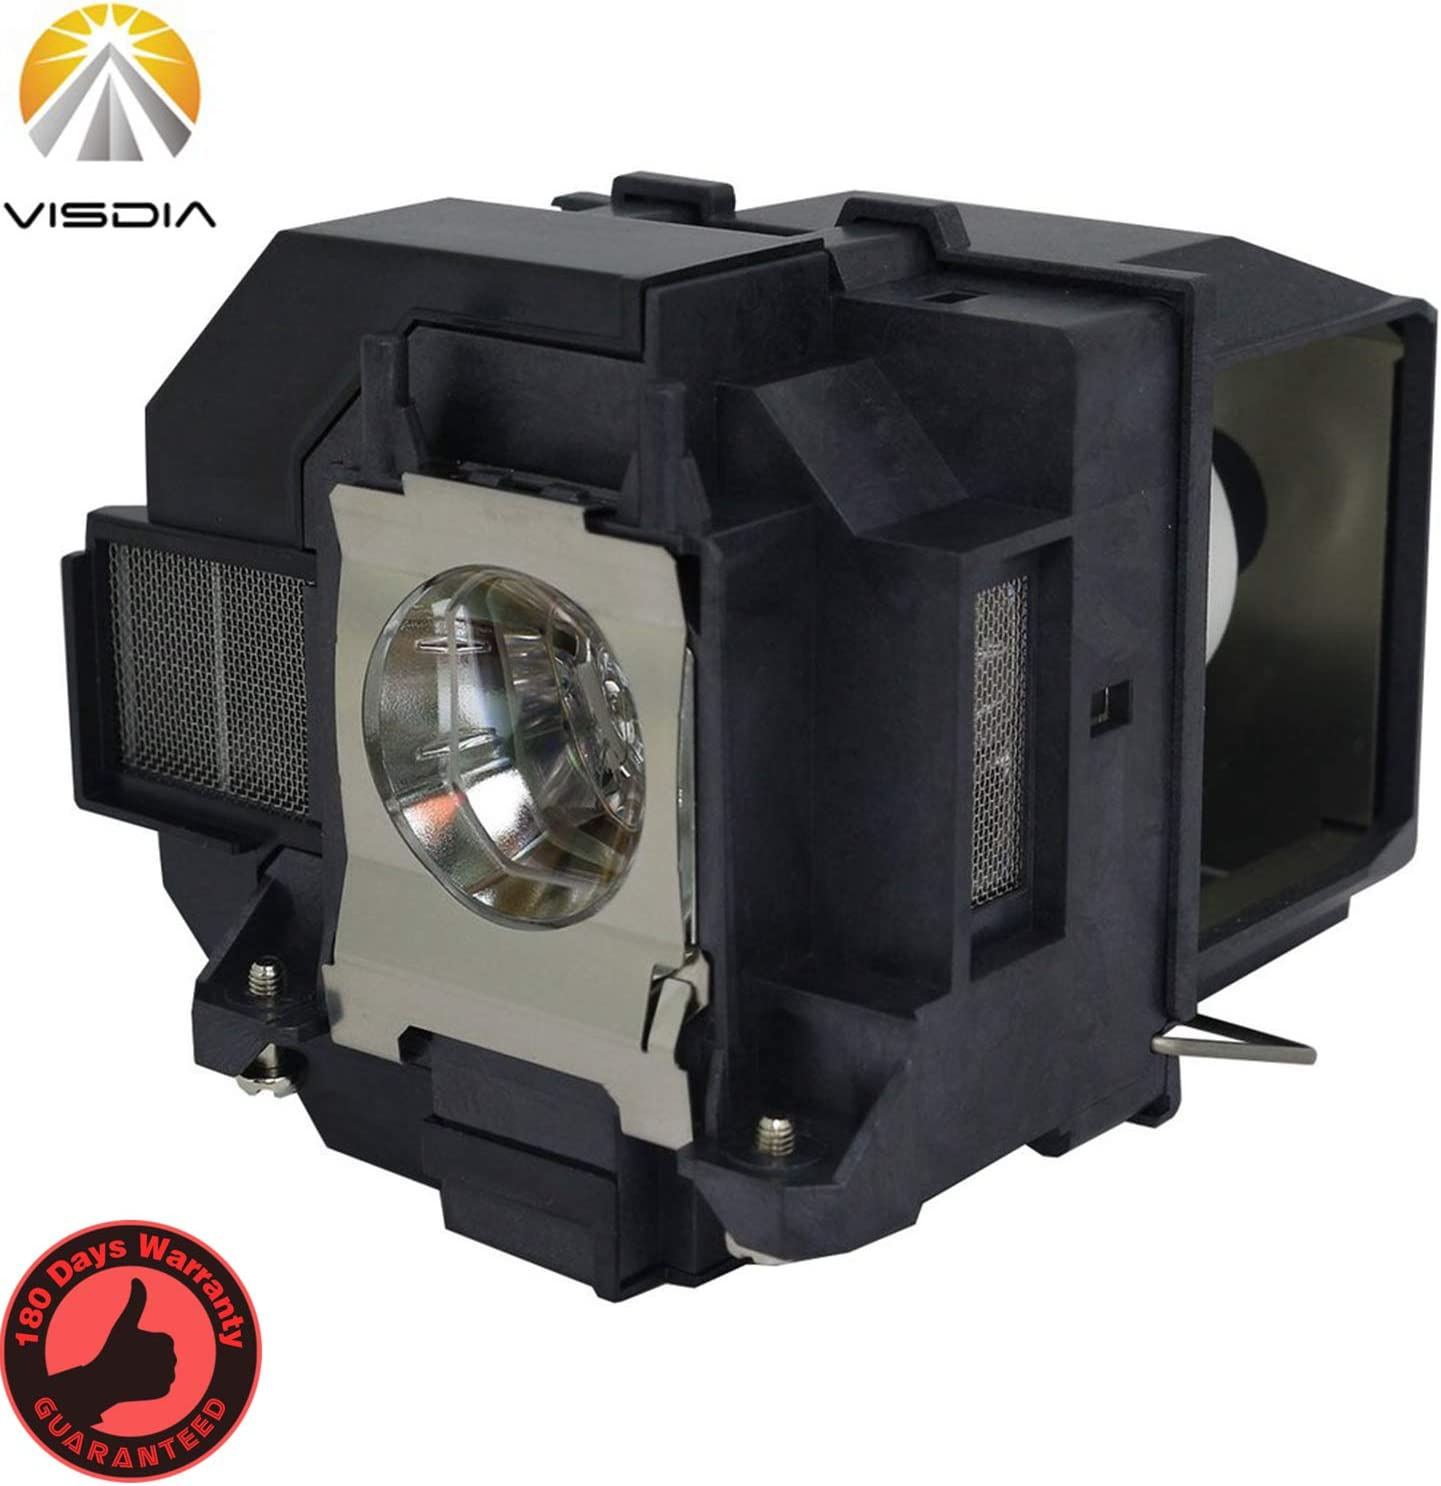 Visdia ELP LP95/V13H010L95 Premium Replacement Projector Lamp with Housing for Epson Projector